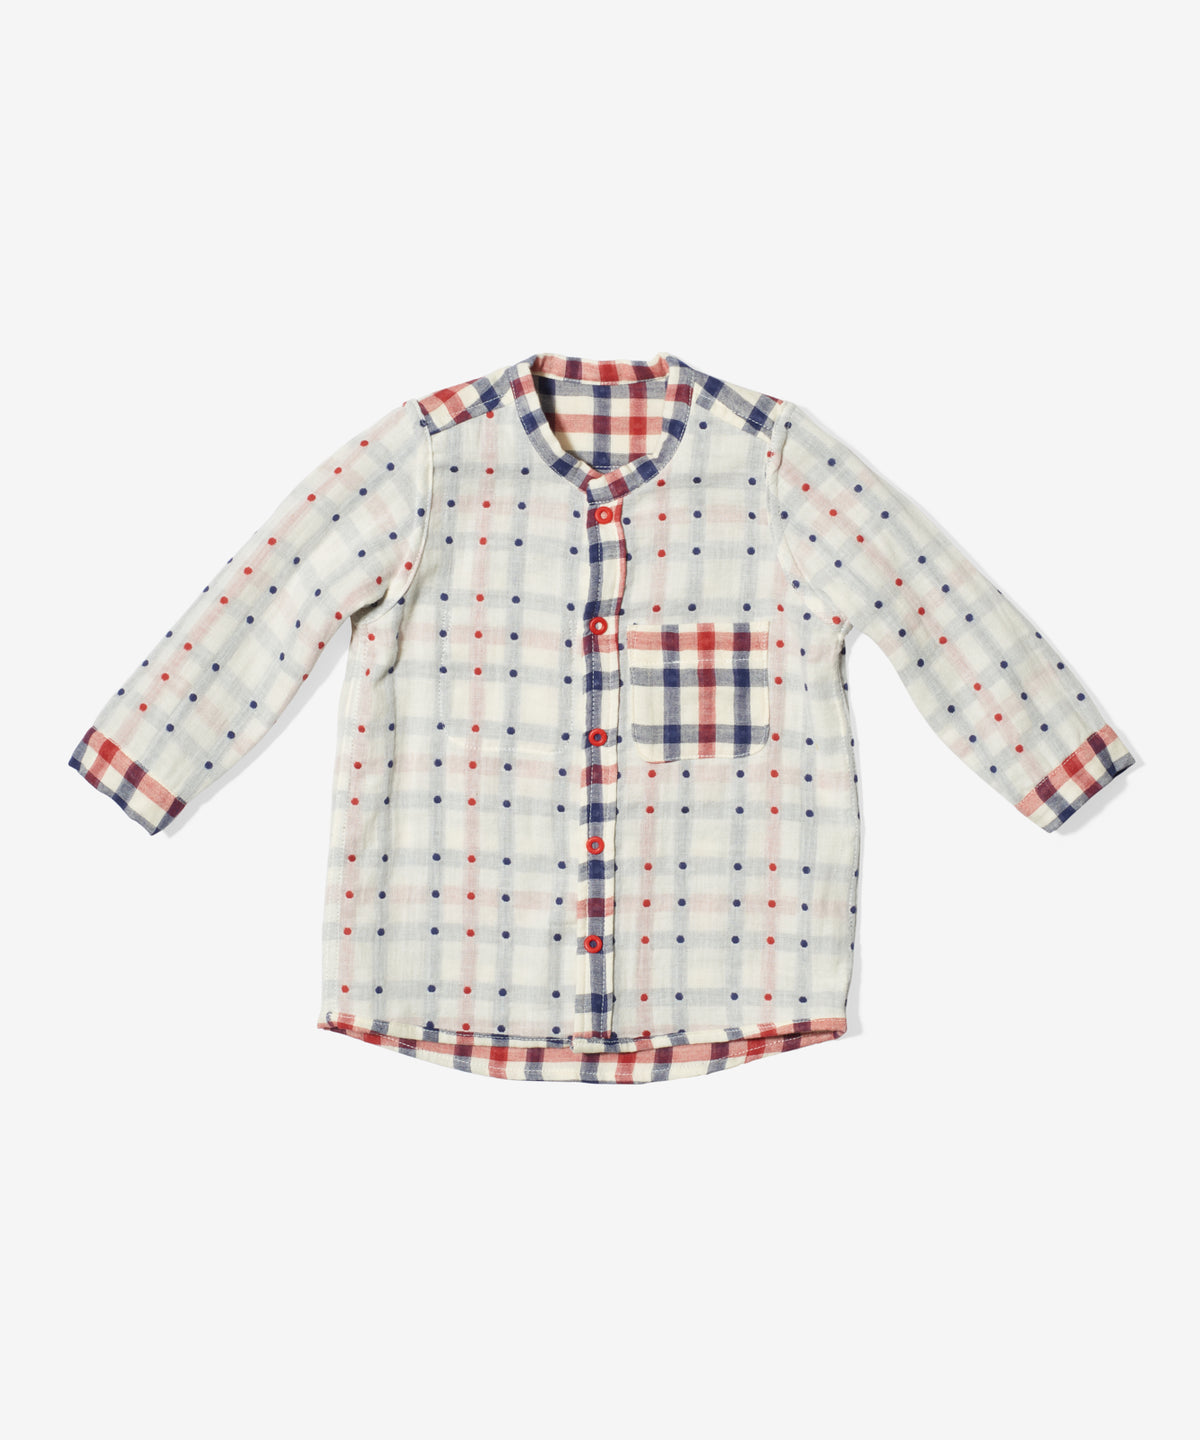 Jack Lee Shirt, Red